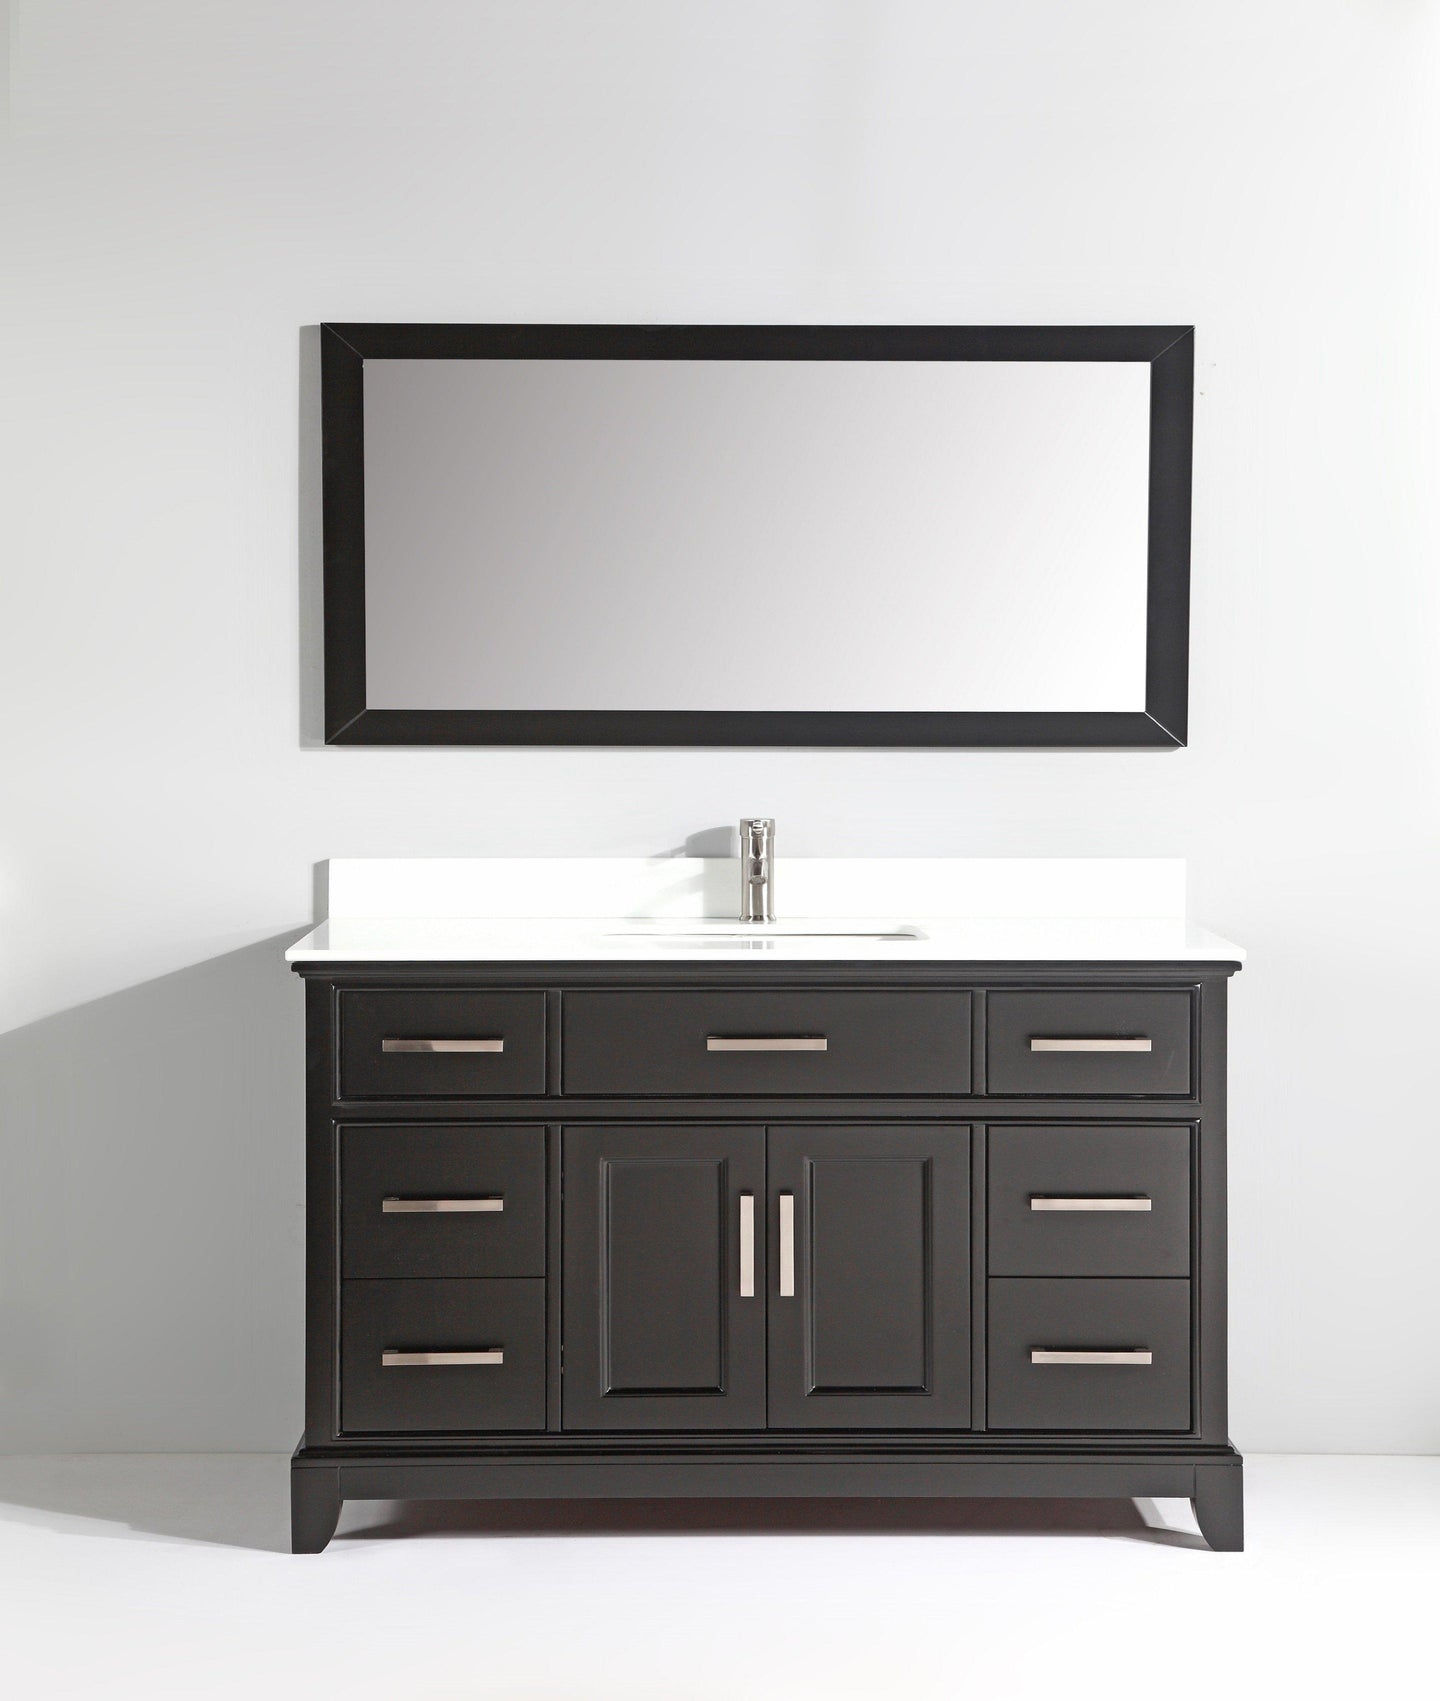 Vanity Art Vanity Set With White Stone Top, Espresso, Standard Mirror, 60